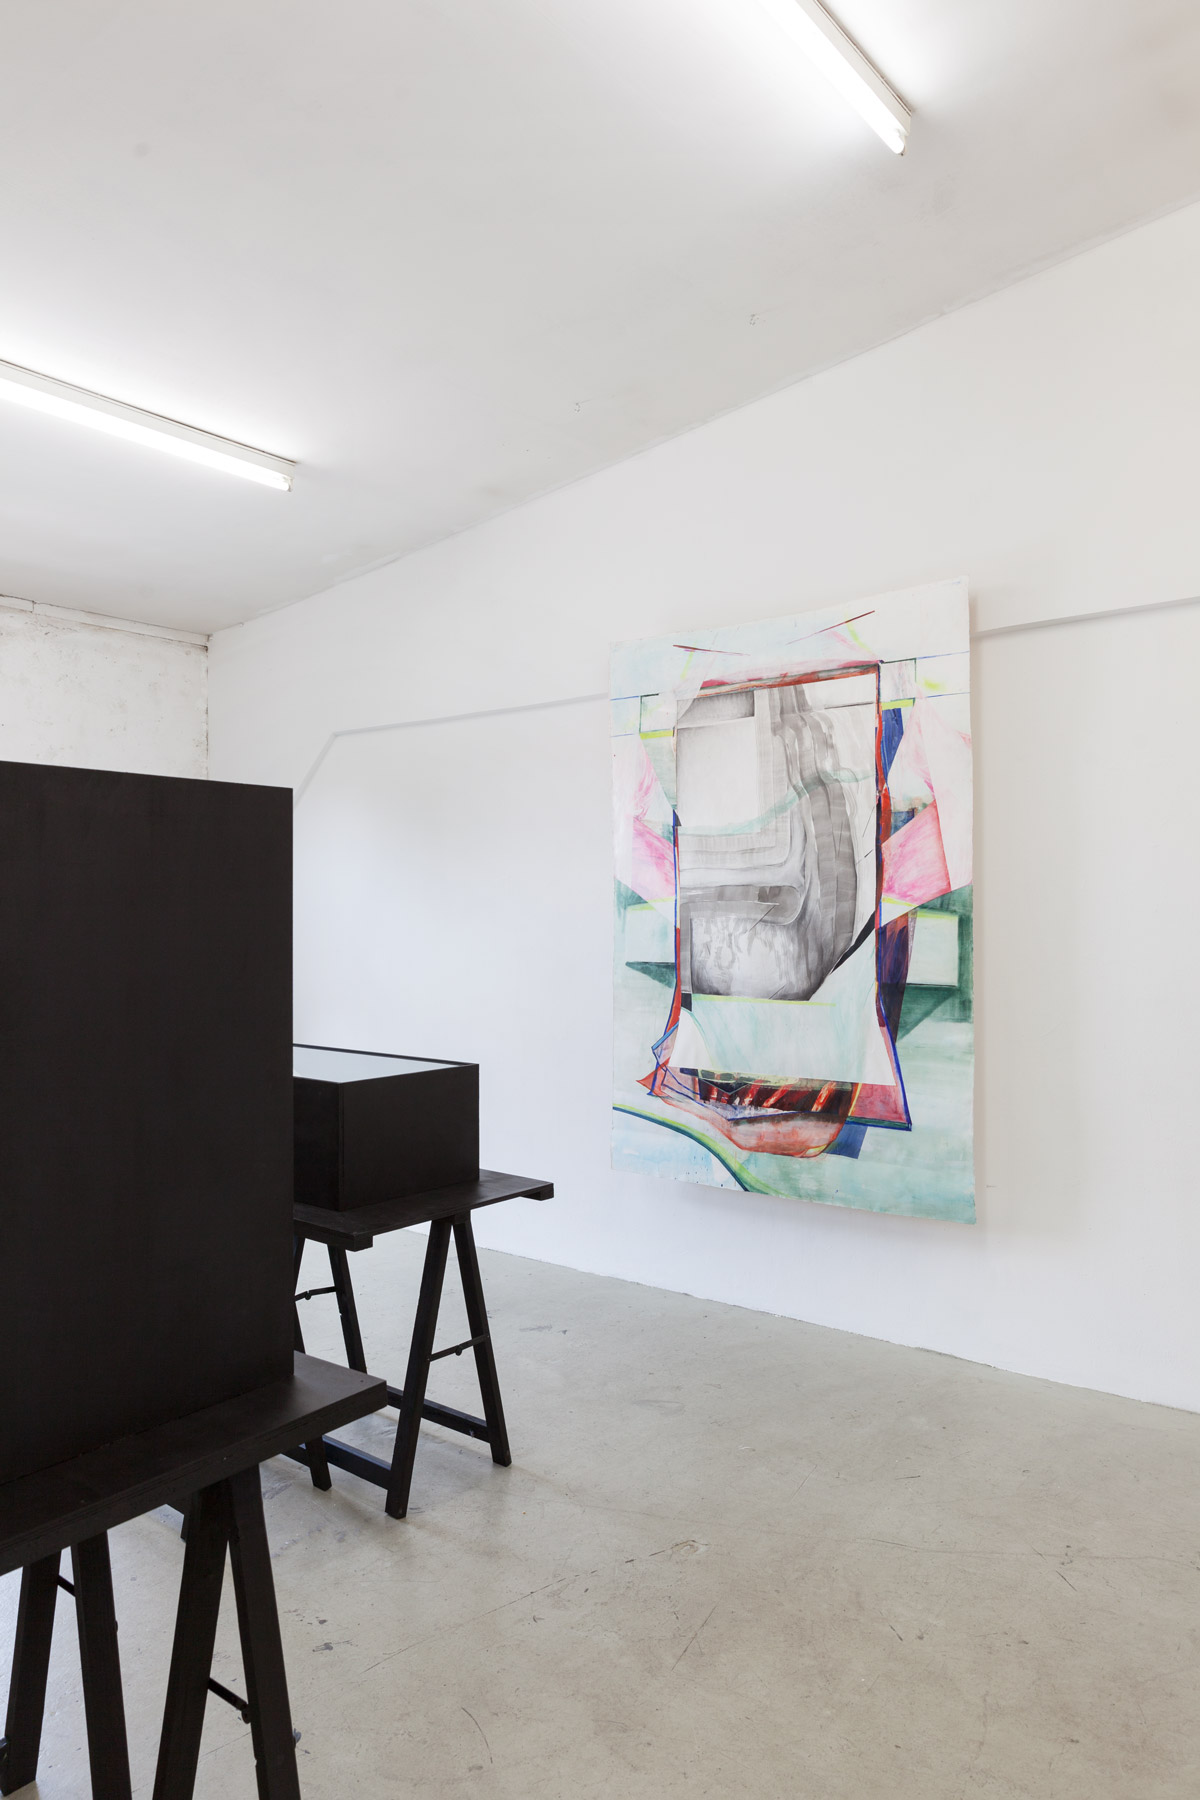 Nina Annabelle Märkl | Possible sculptures for a life somehow distracted | Installation with Jenny Forster (paintings) | photo: Basti Schels| 2015